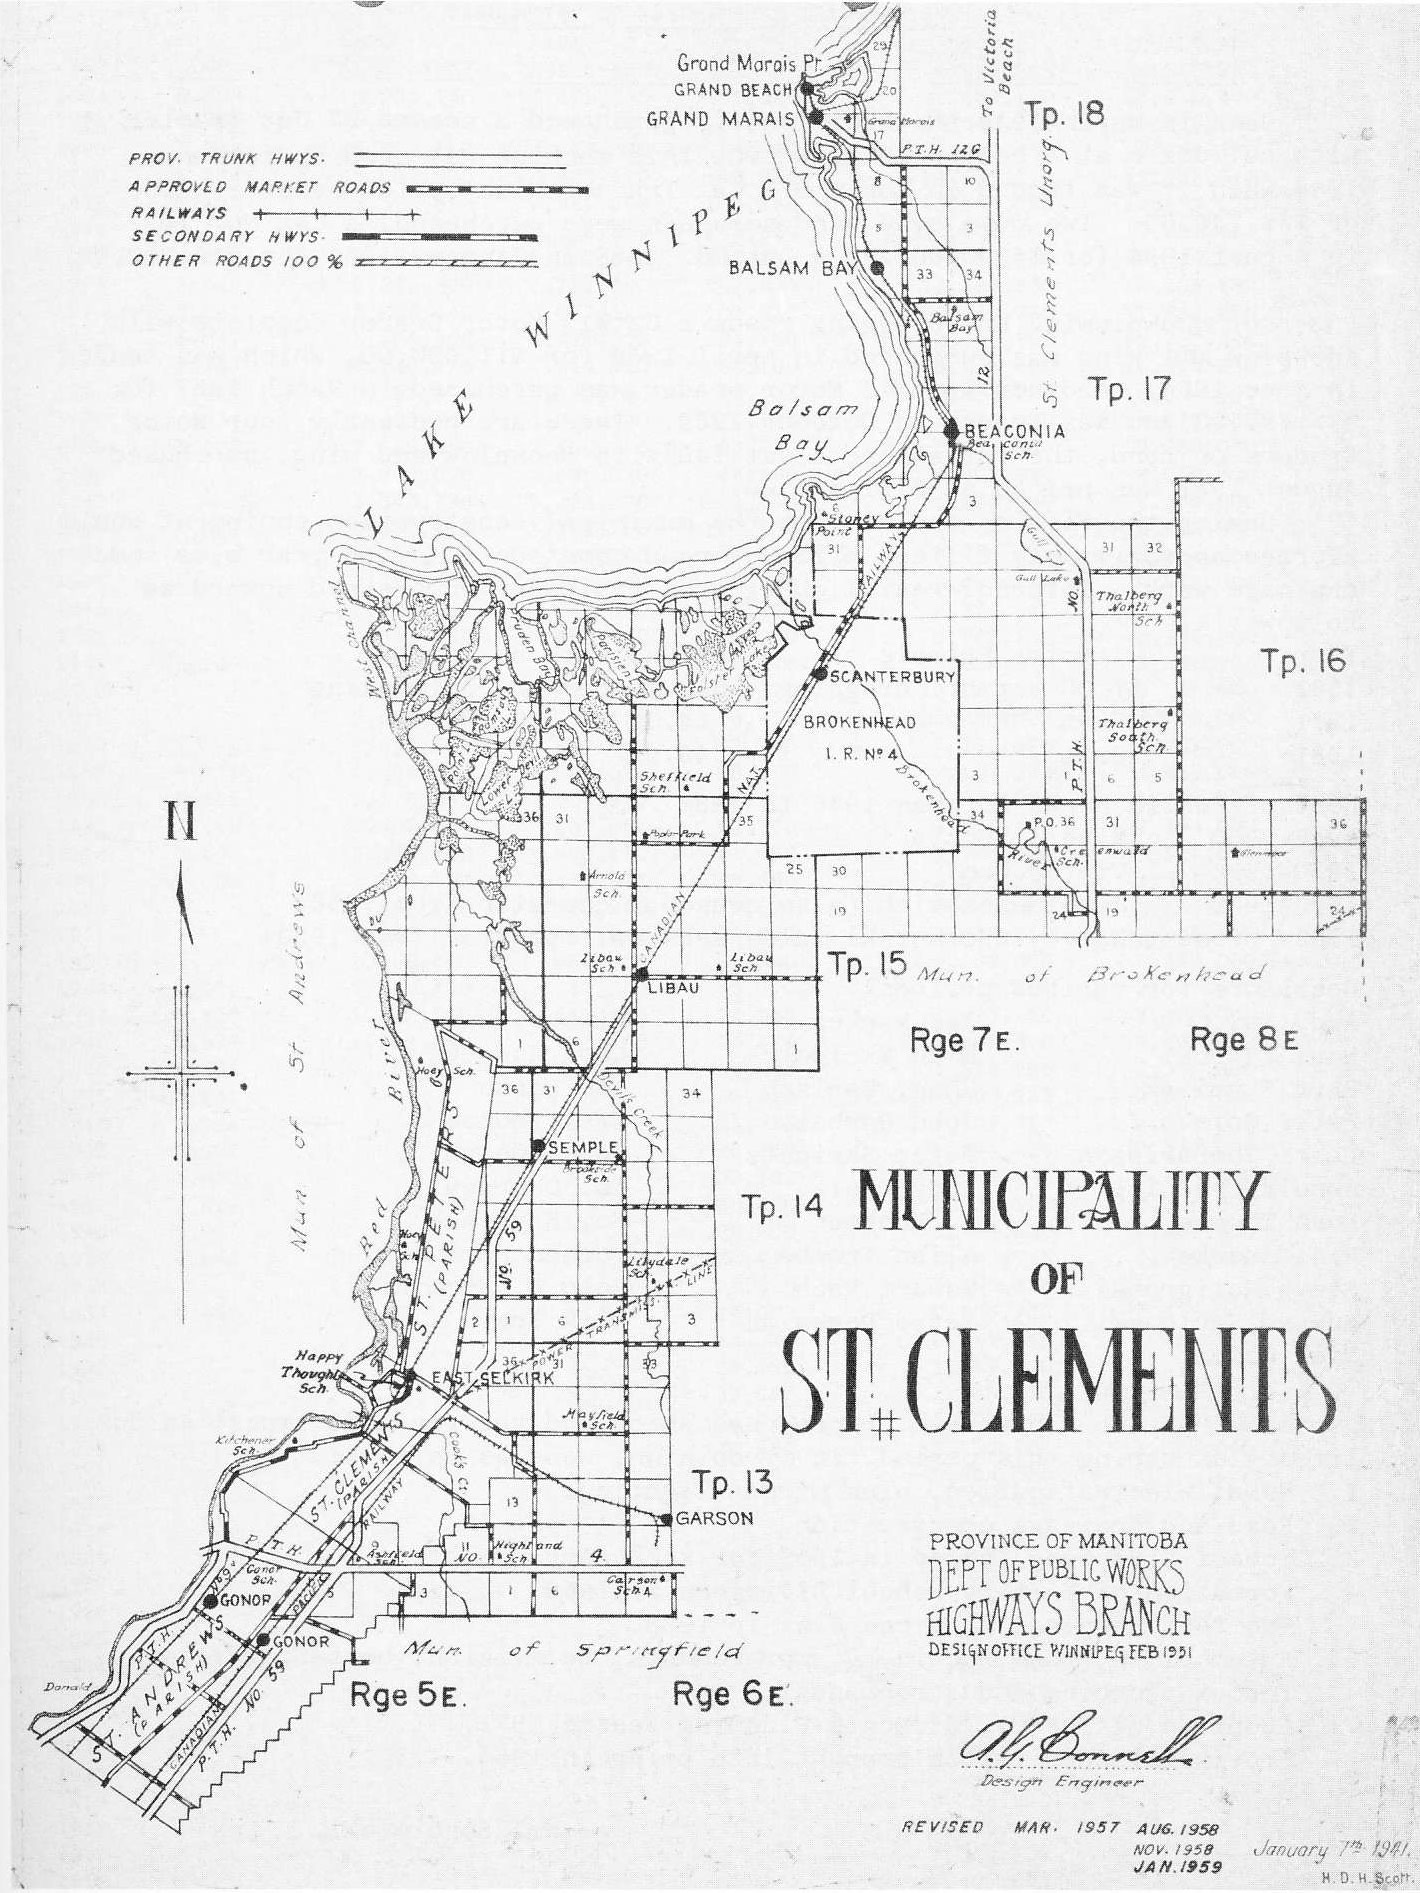 Map of RM of St. Clements